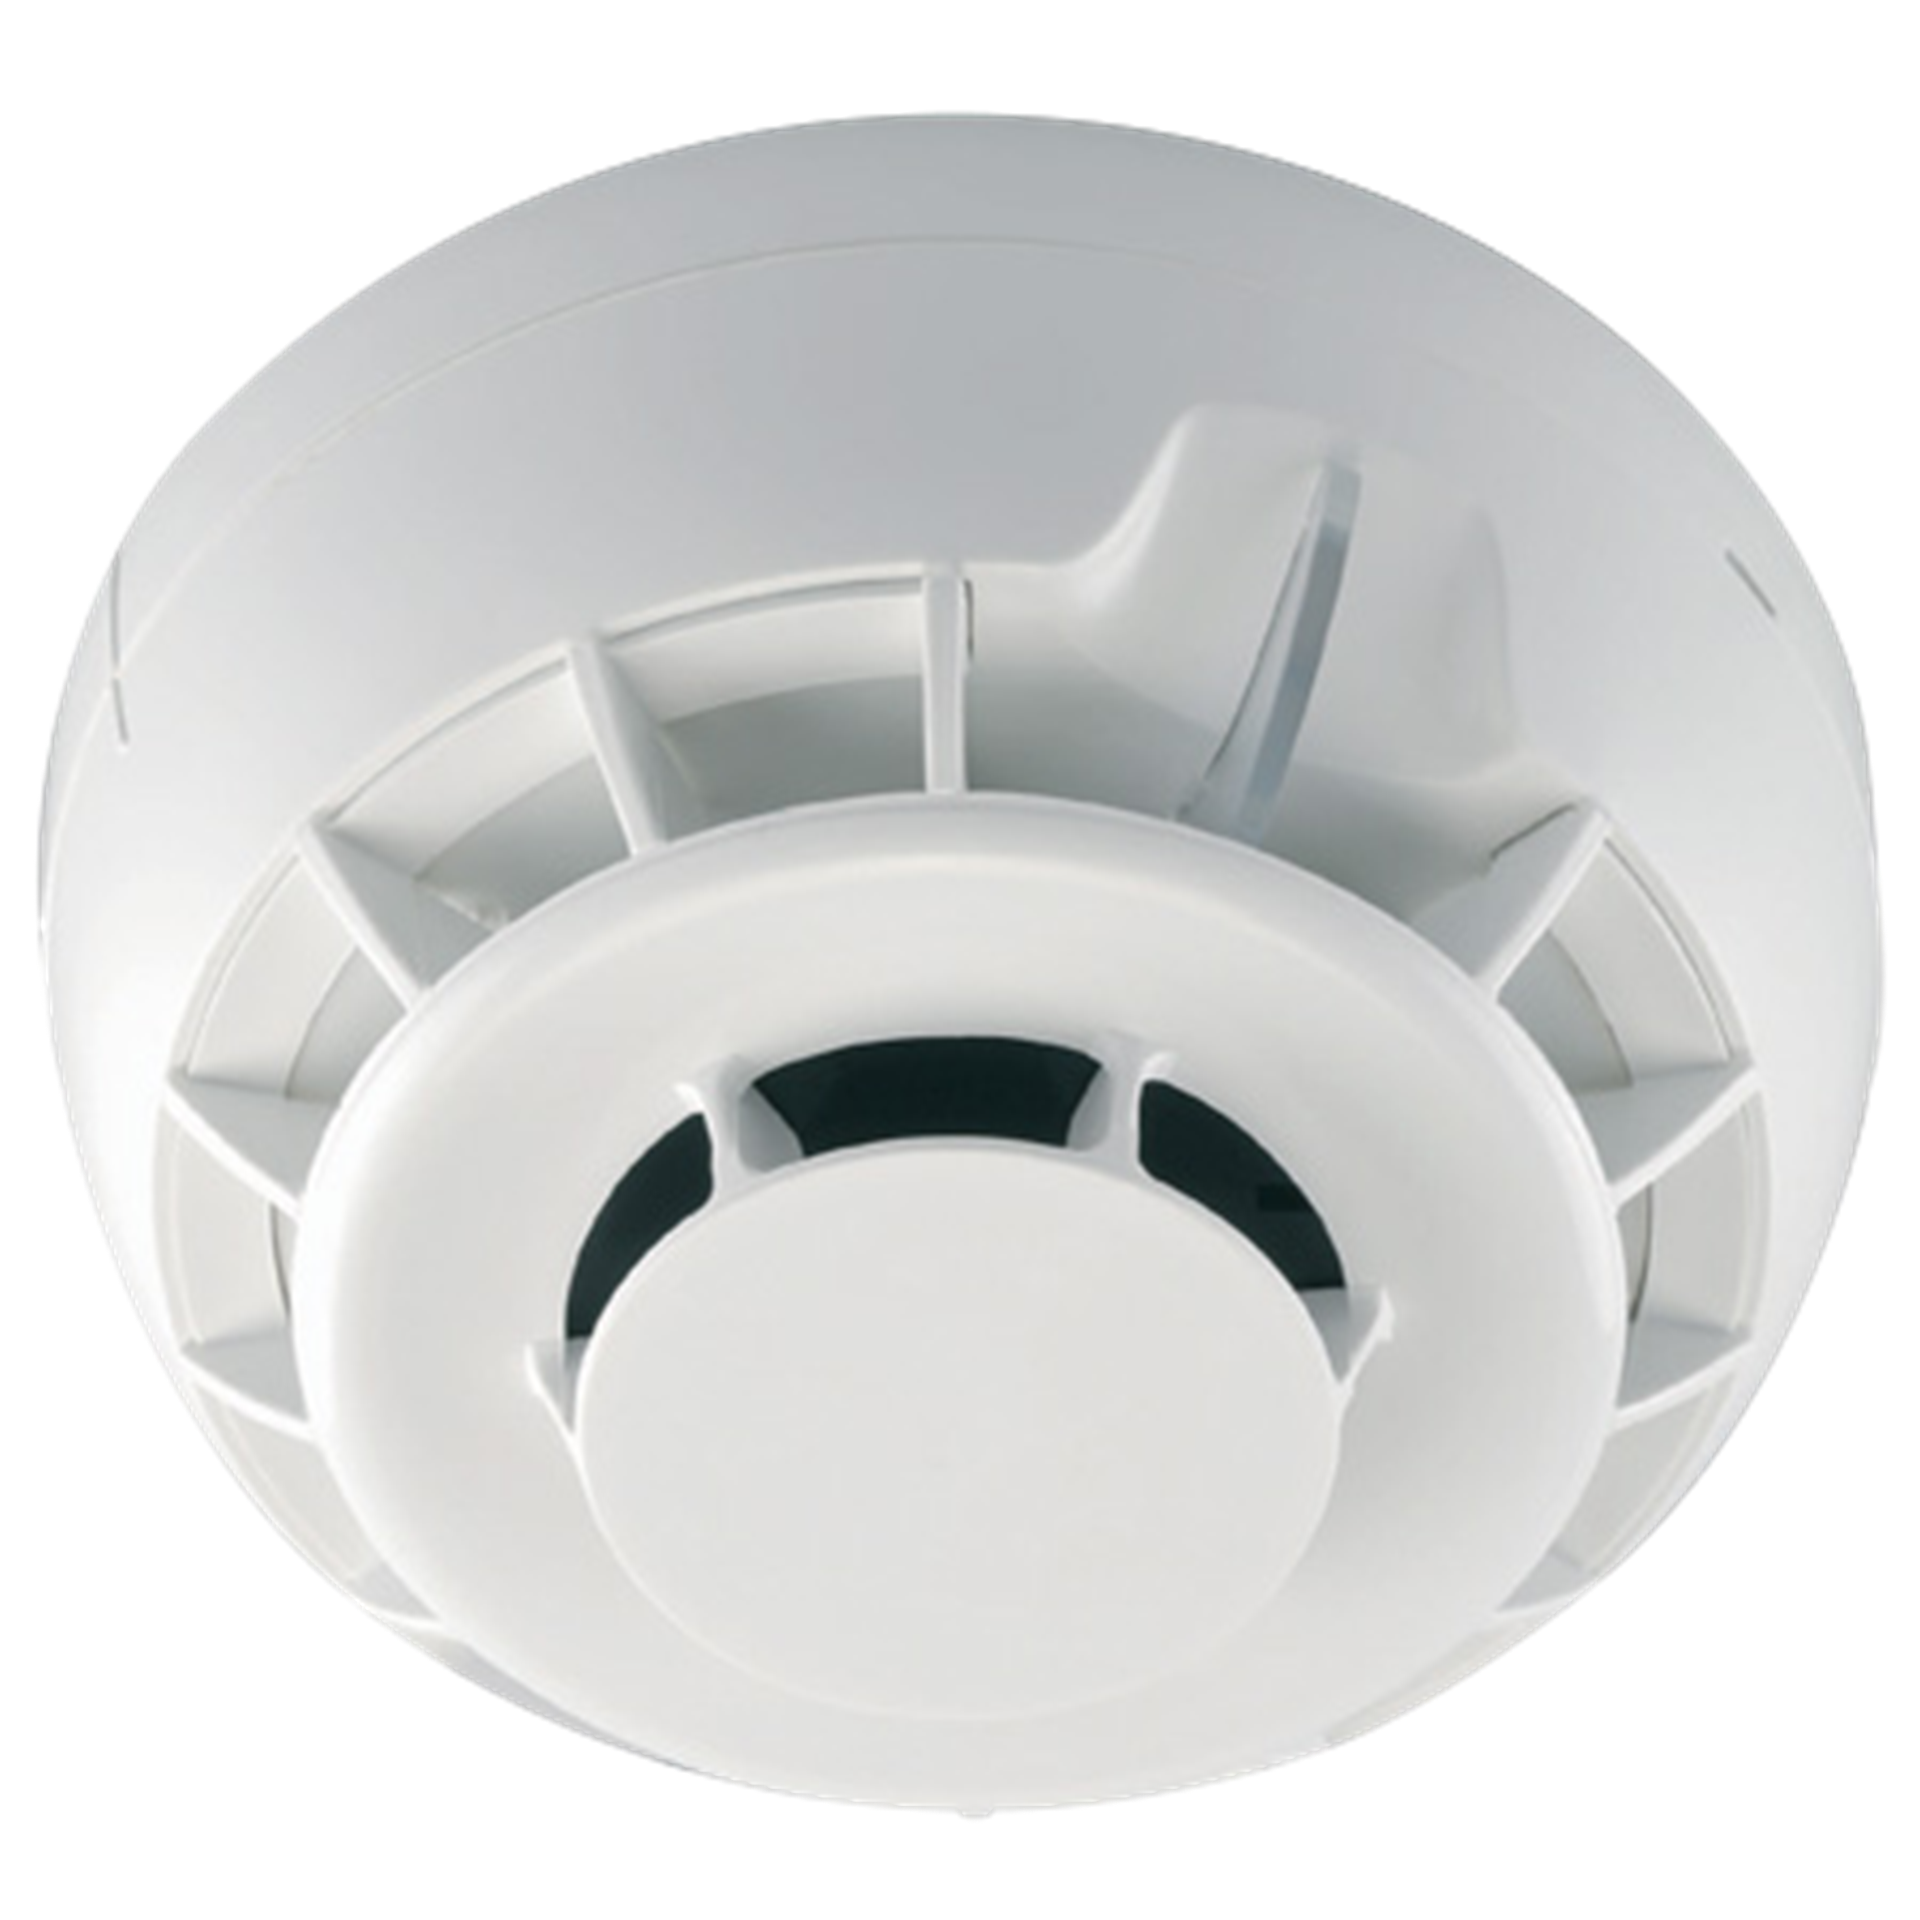 ESP CSD-2 Combined Smoke & Heat detector with Diode base